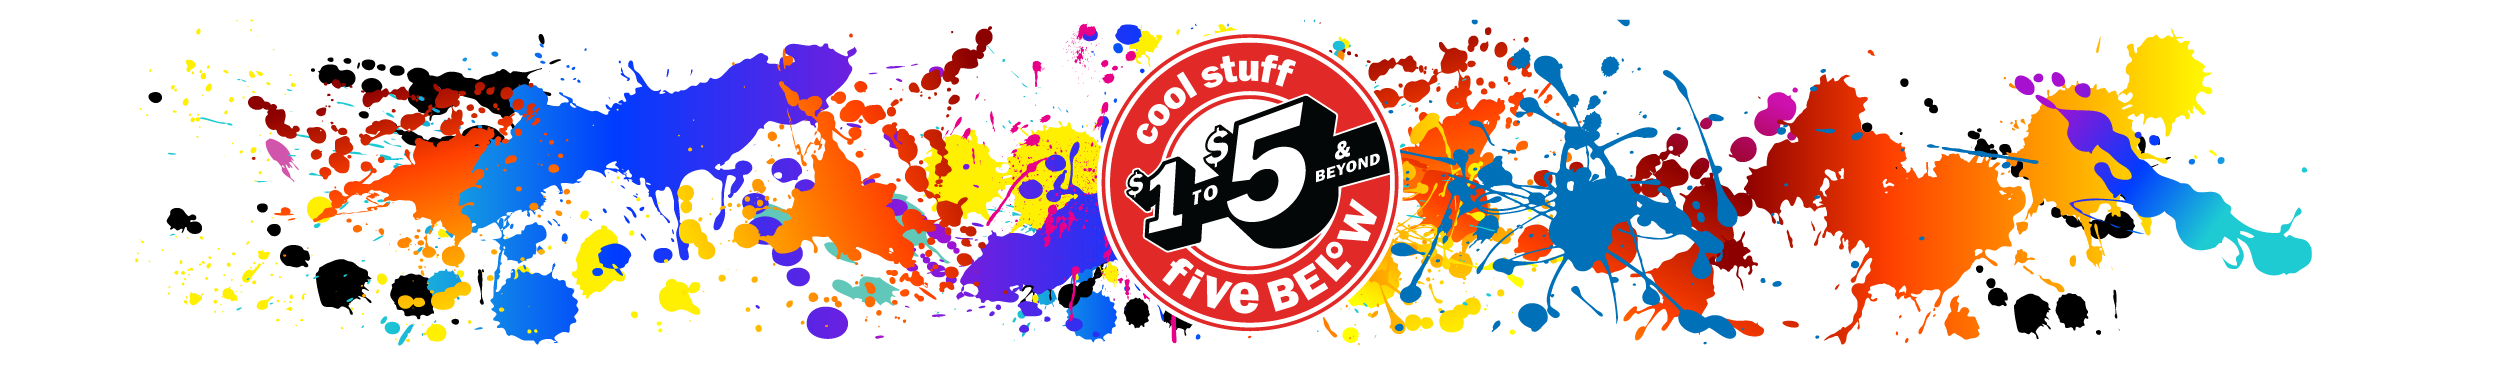 Holiday Shop Gifts Must Haves Five Below Let Go Have Fun